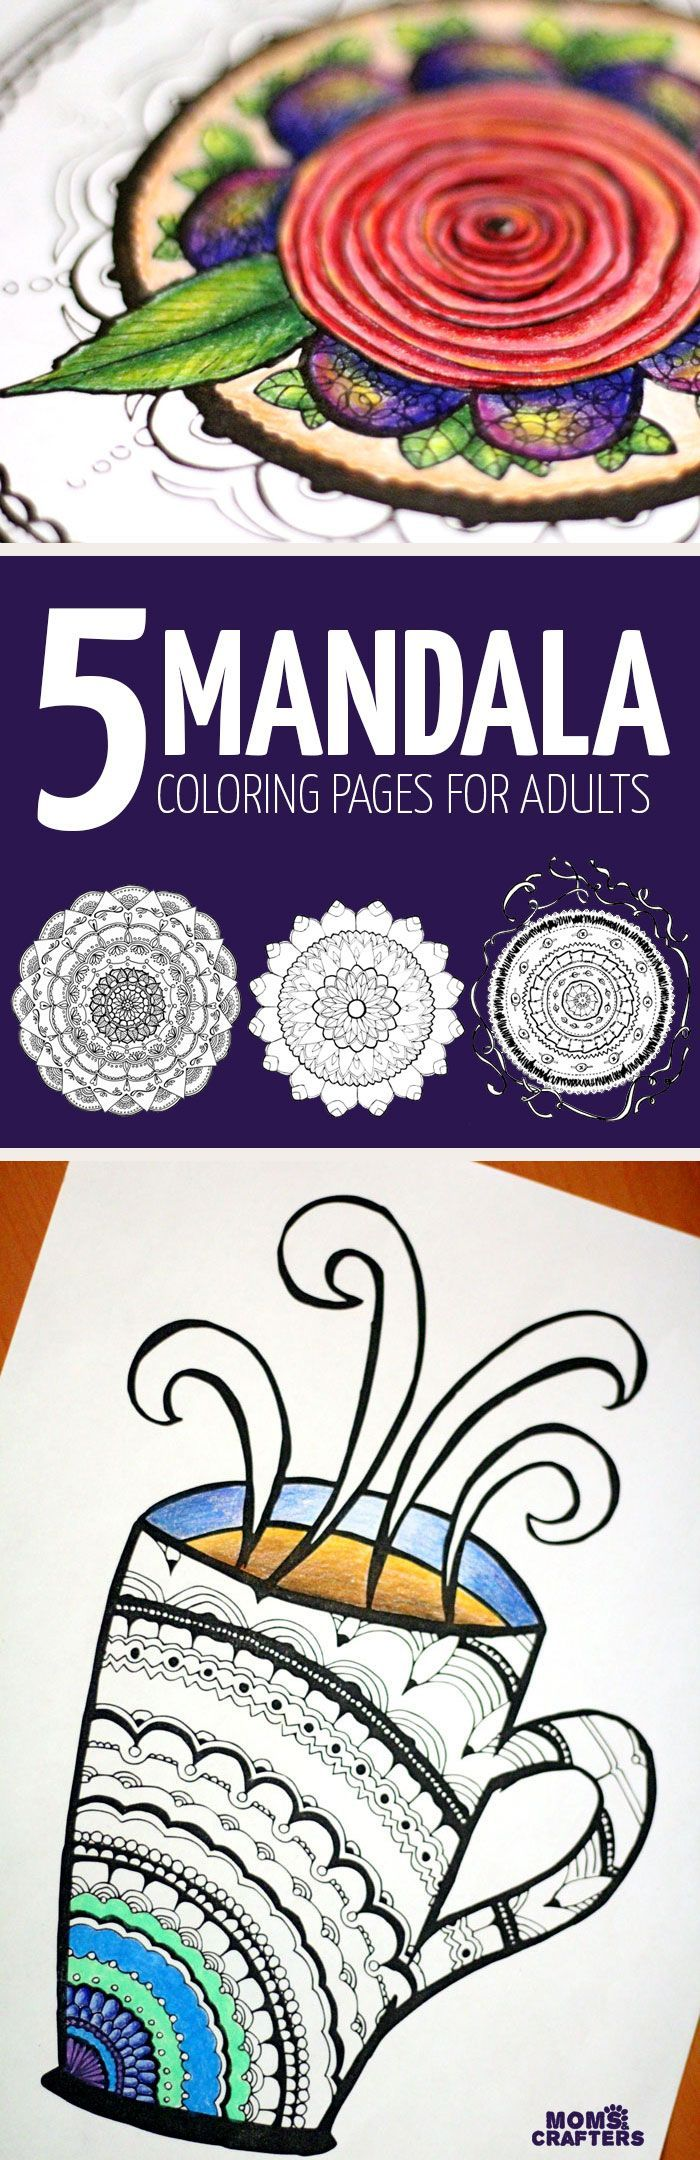 Mandala coloring pages art therapy recovery - Cool Mandala Coloring Pages For Adults